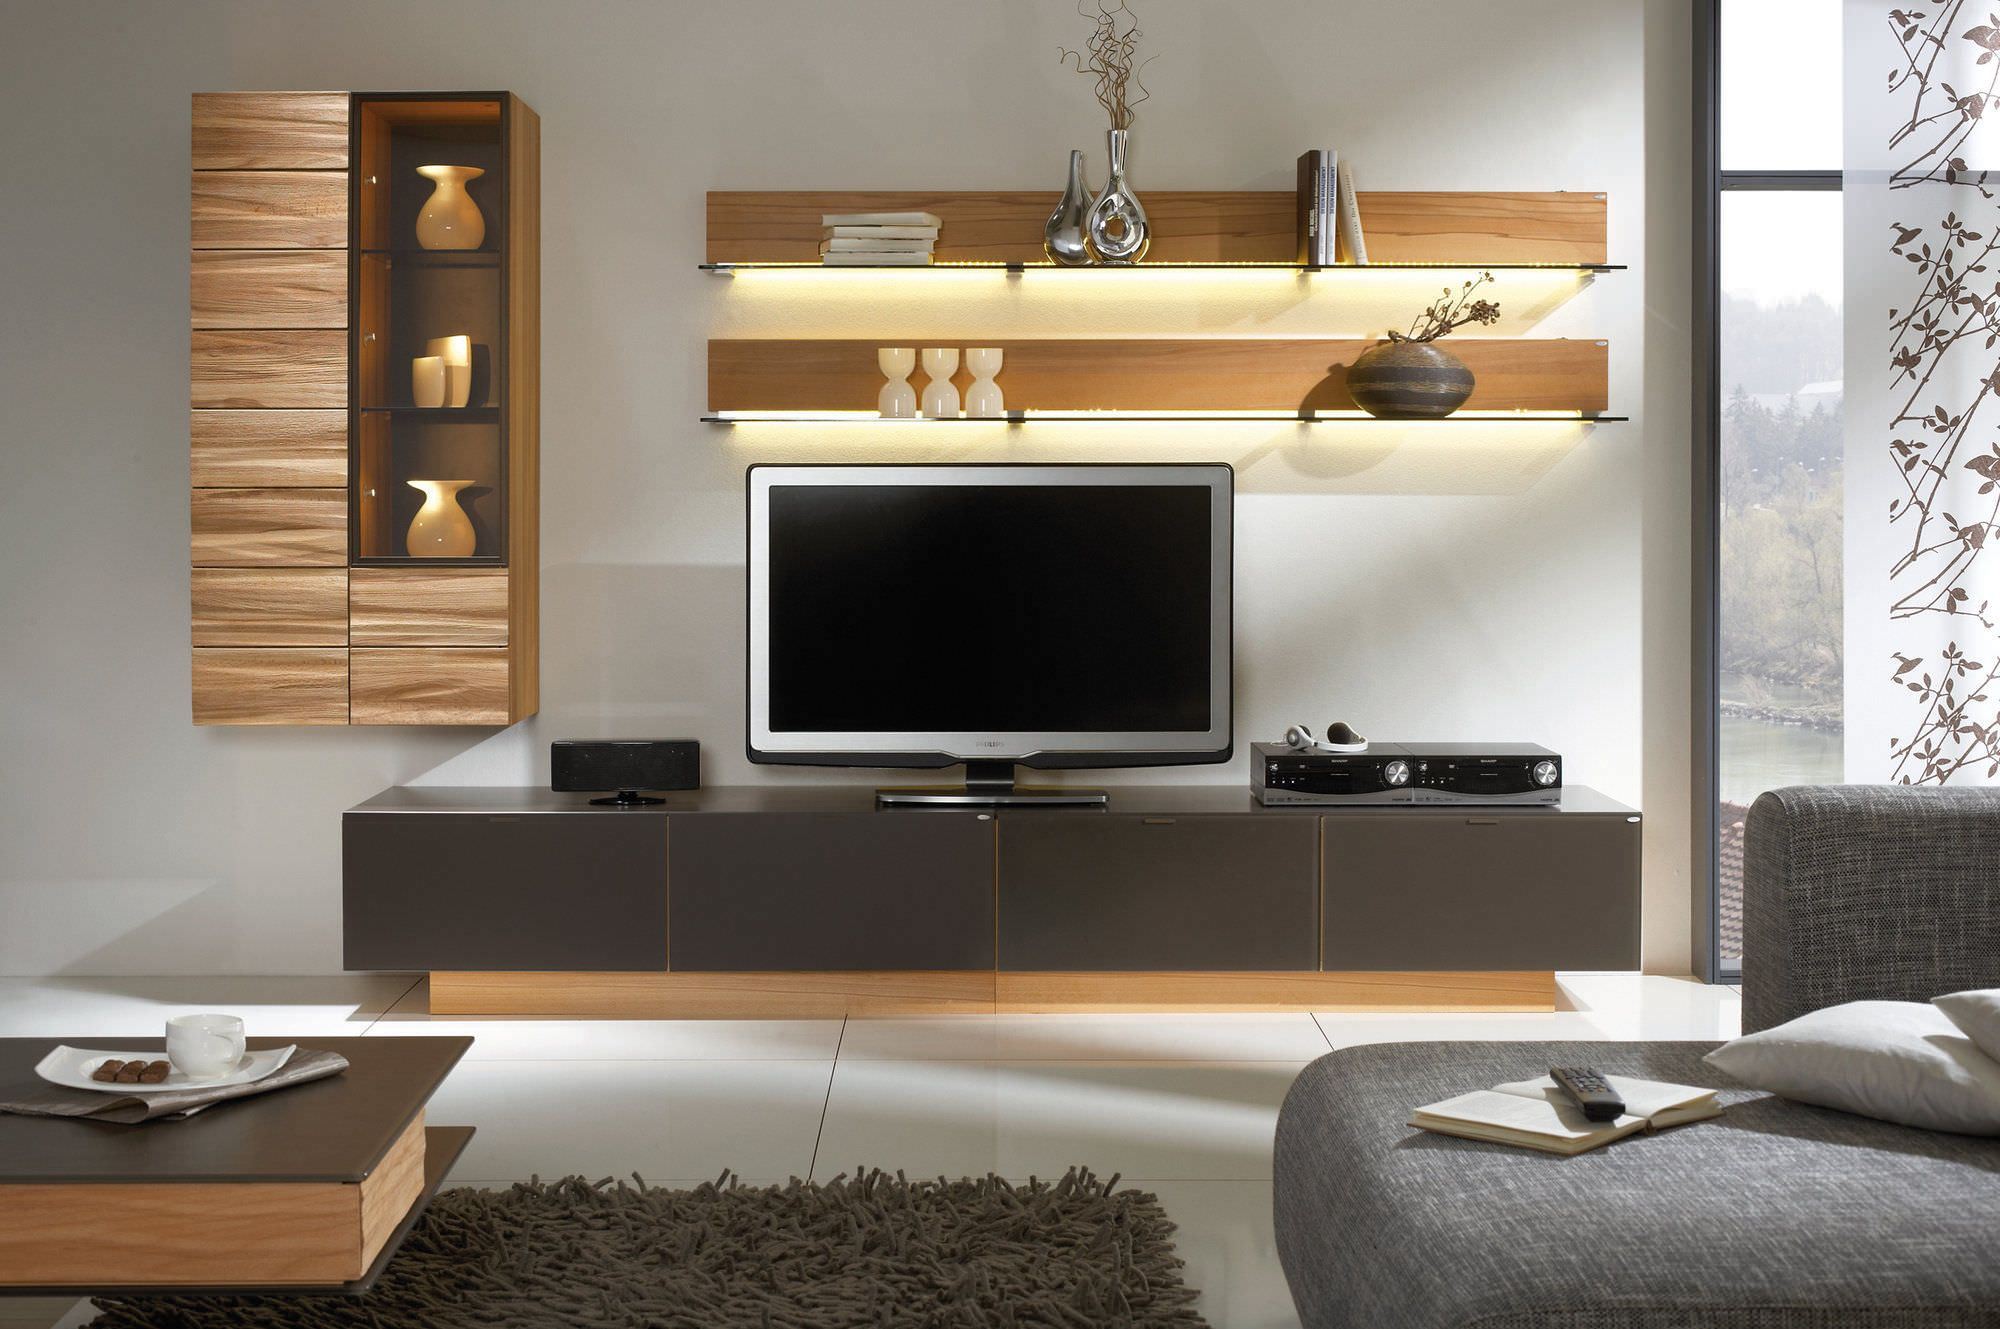 Living Room Fabulous Modern Tv Units With Cool Led Light  Also Custom Wood Material Wall Mount Shelves Black Stand Awesome White Brown Glass Design Contemporary